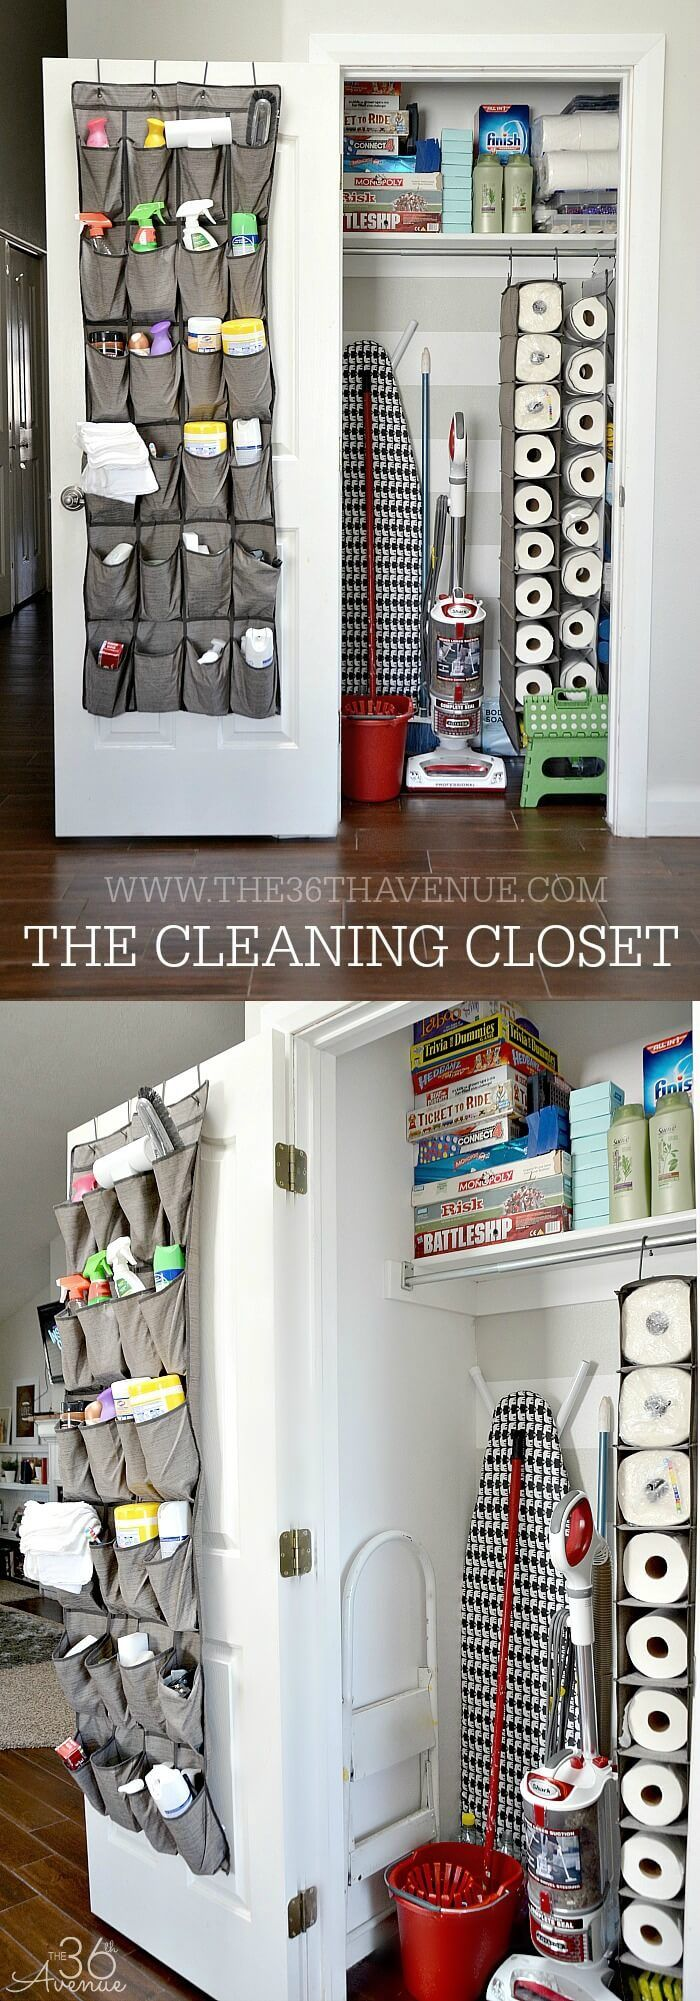 best home stuff images on pinterest good ideas home ideas and